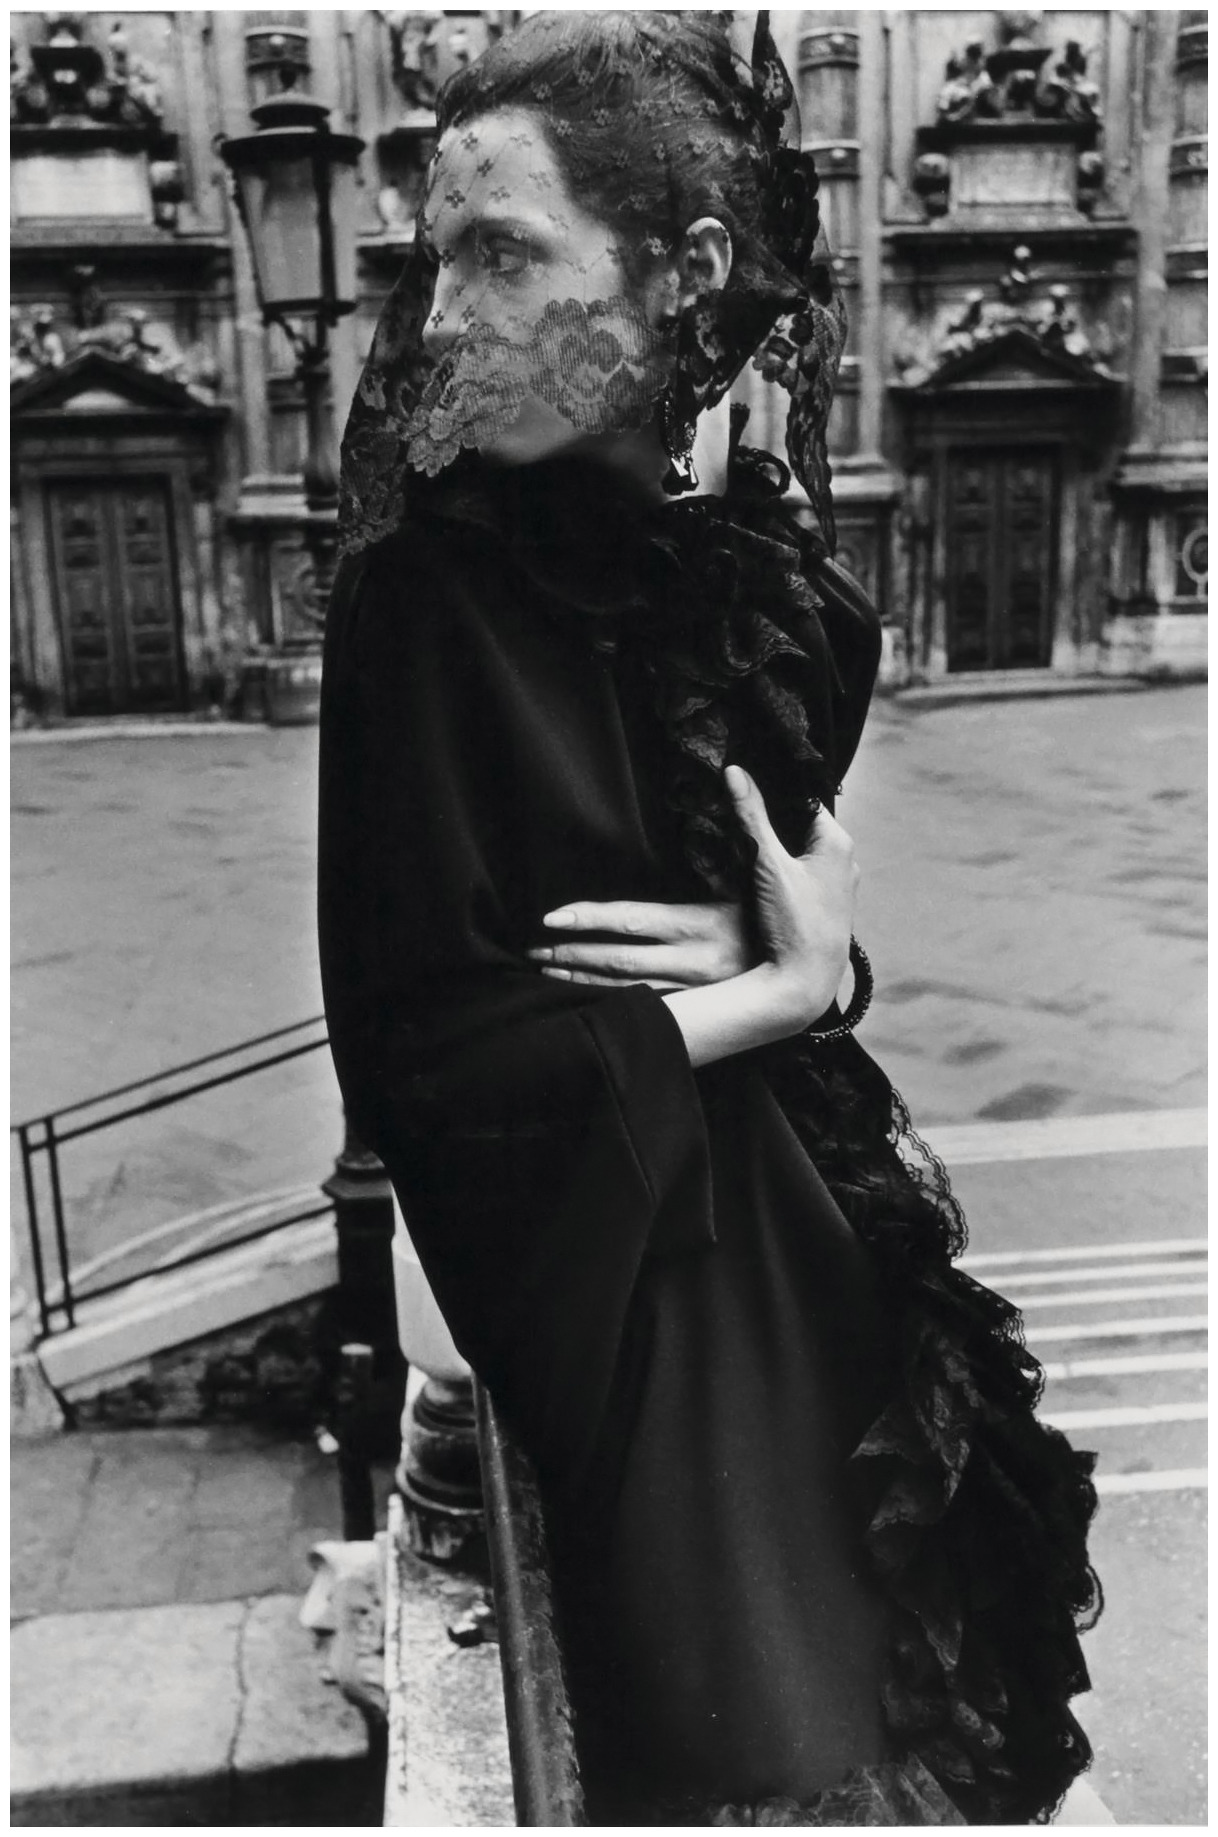 Mirella Petteni in Queen, August 1966. Photo: Helmut Newton